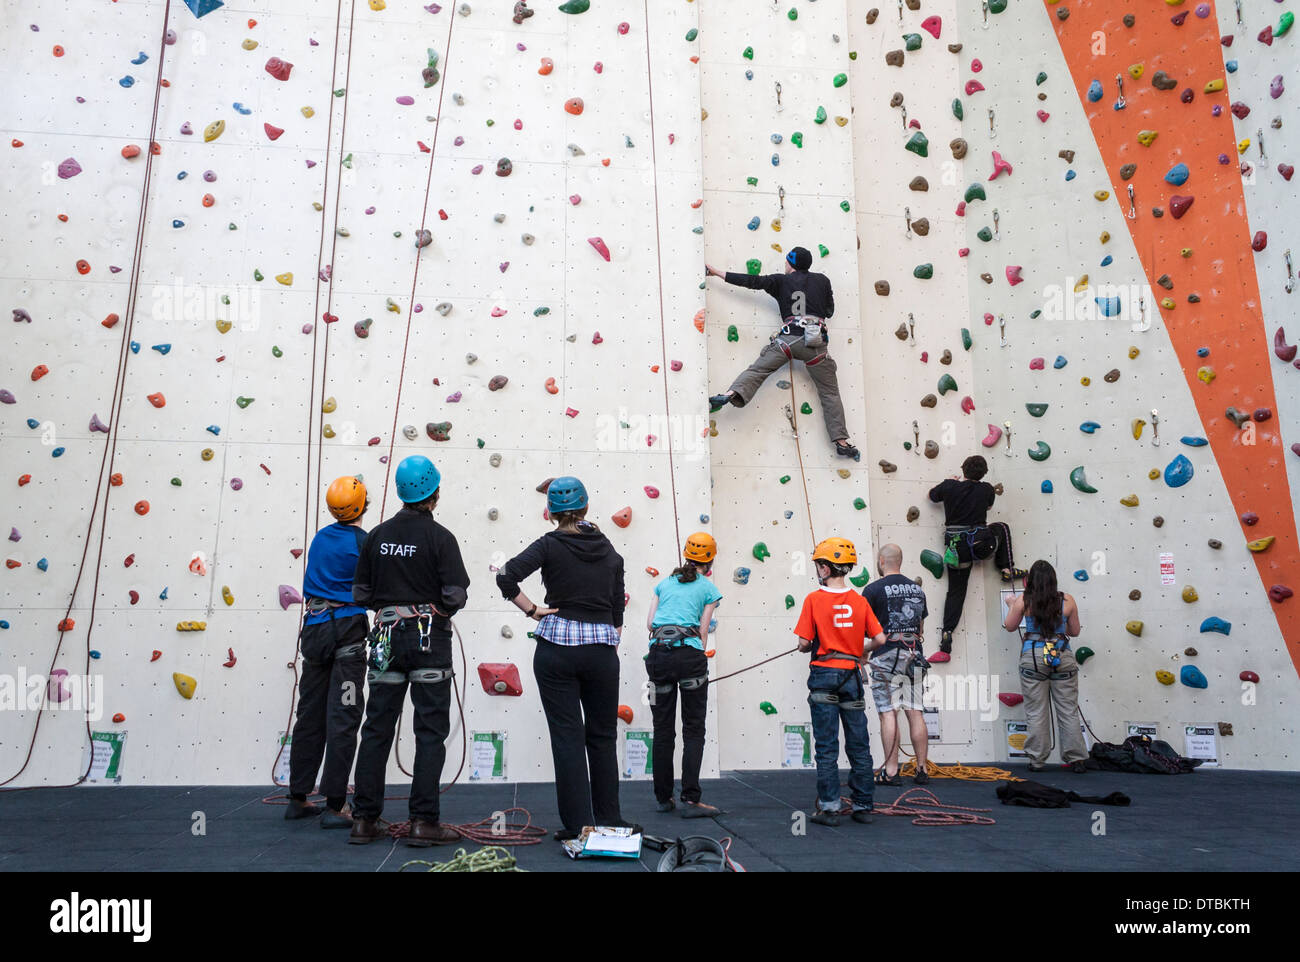 Children and adults take a climbing lesson on an indoor climbing wall. - Stock Image